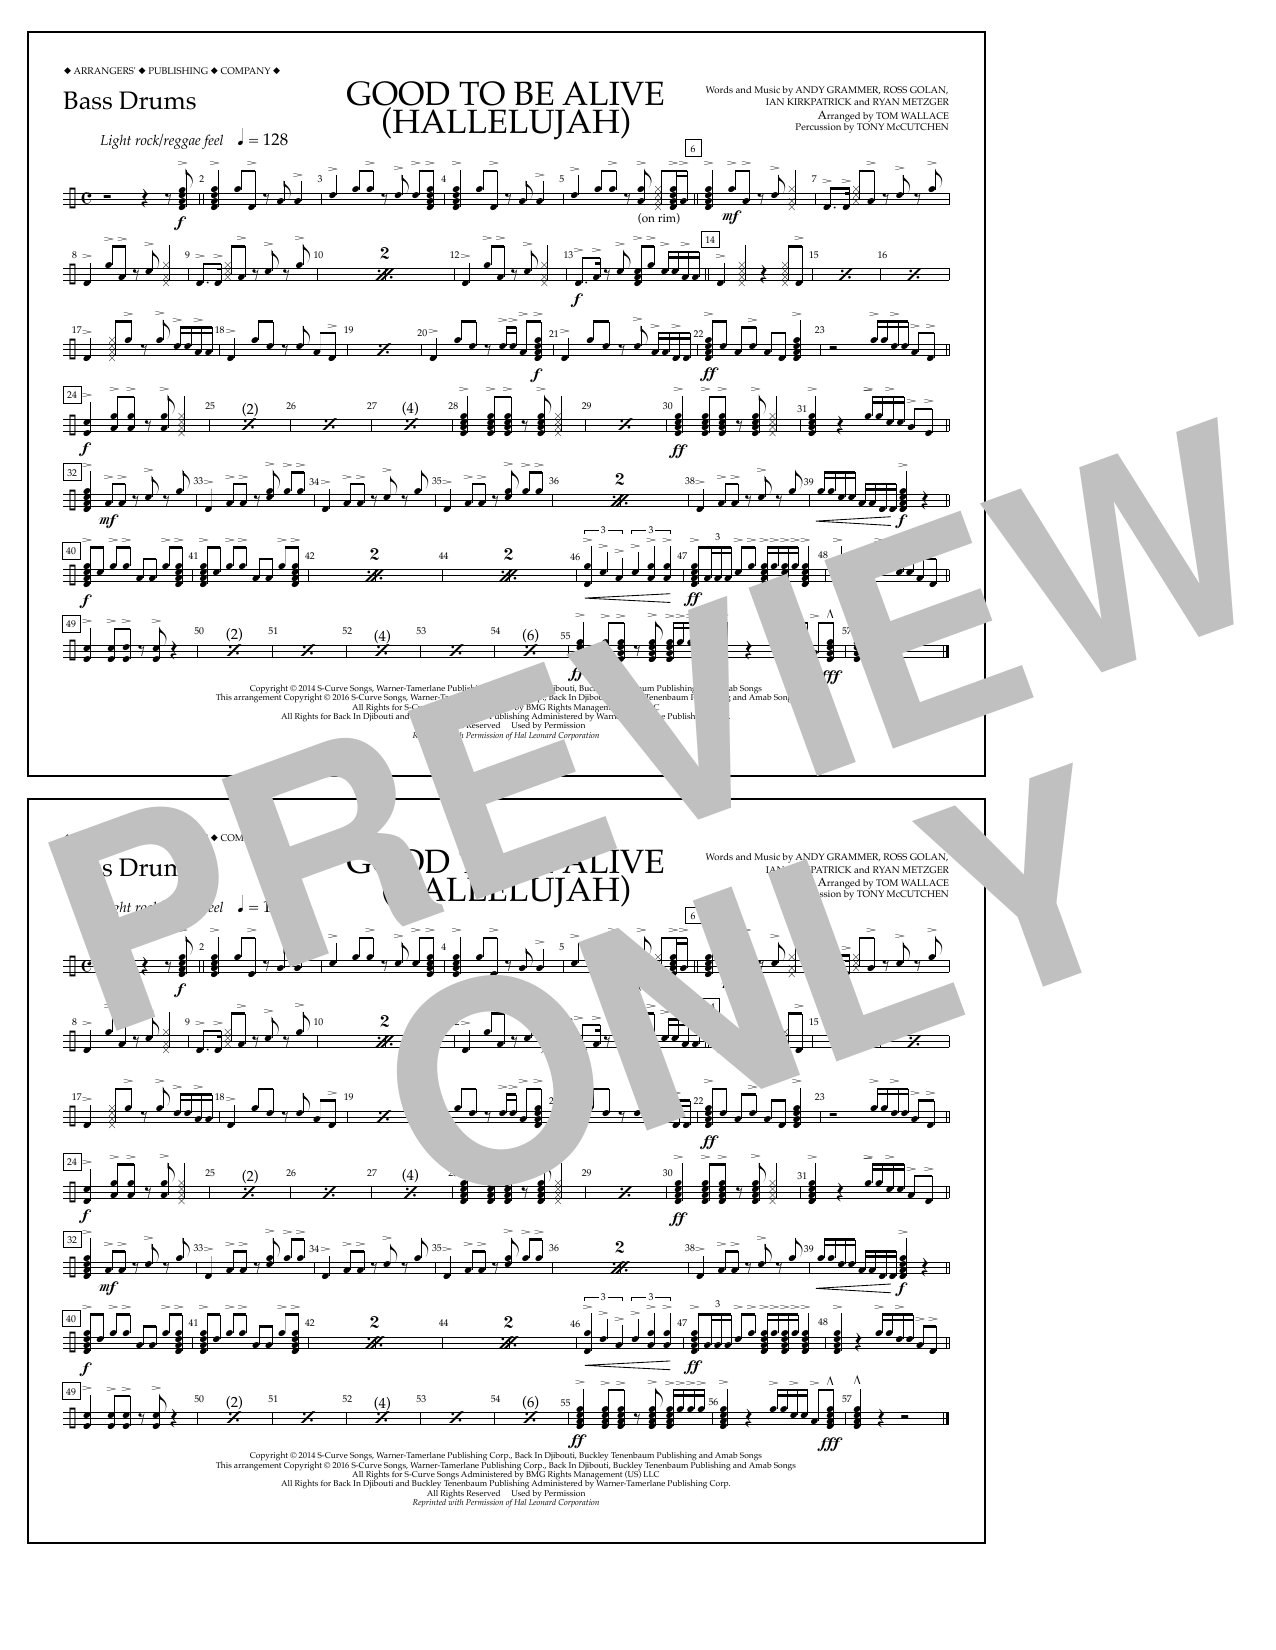 Good to Be Alive (Hallelujah) - Bass Drums Sheet Music